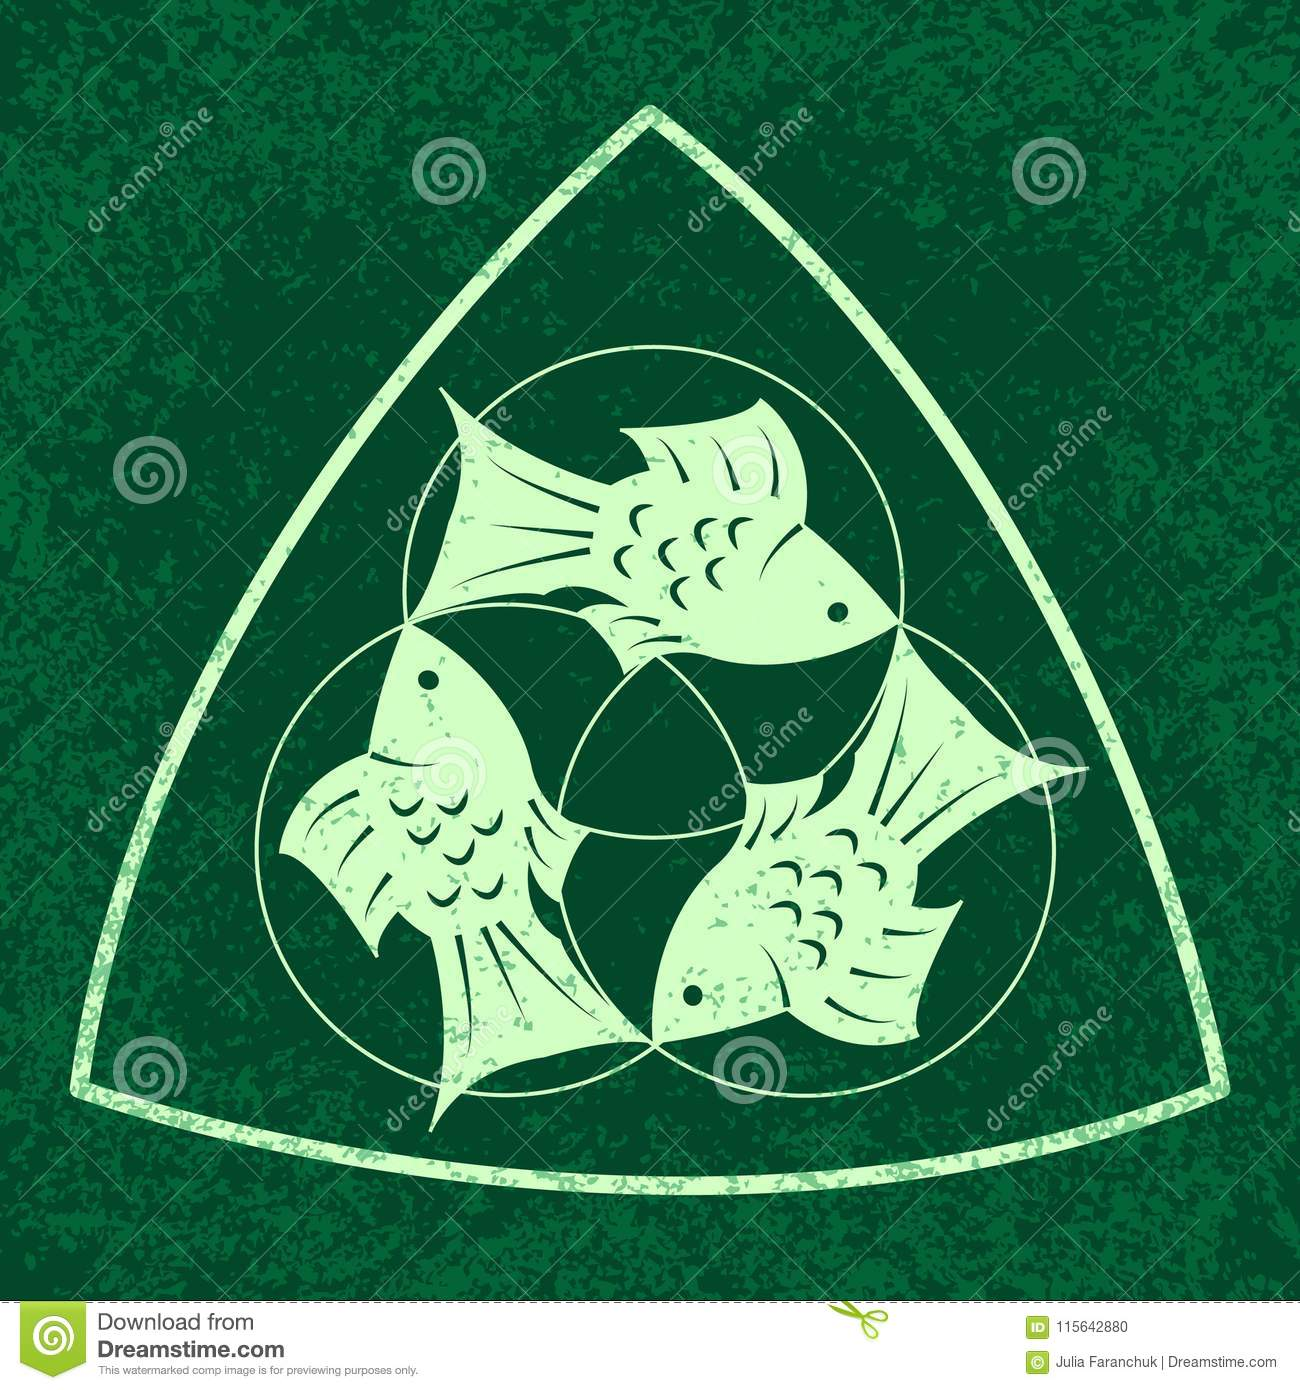 Trinity Sunday Christian Holiday Three Fish Located Symmetrically